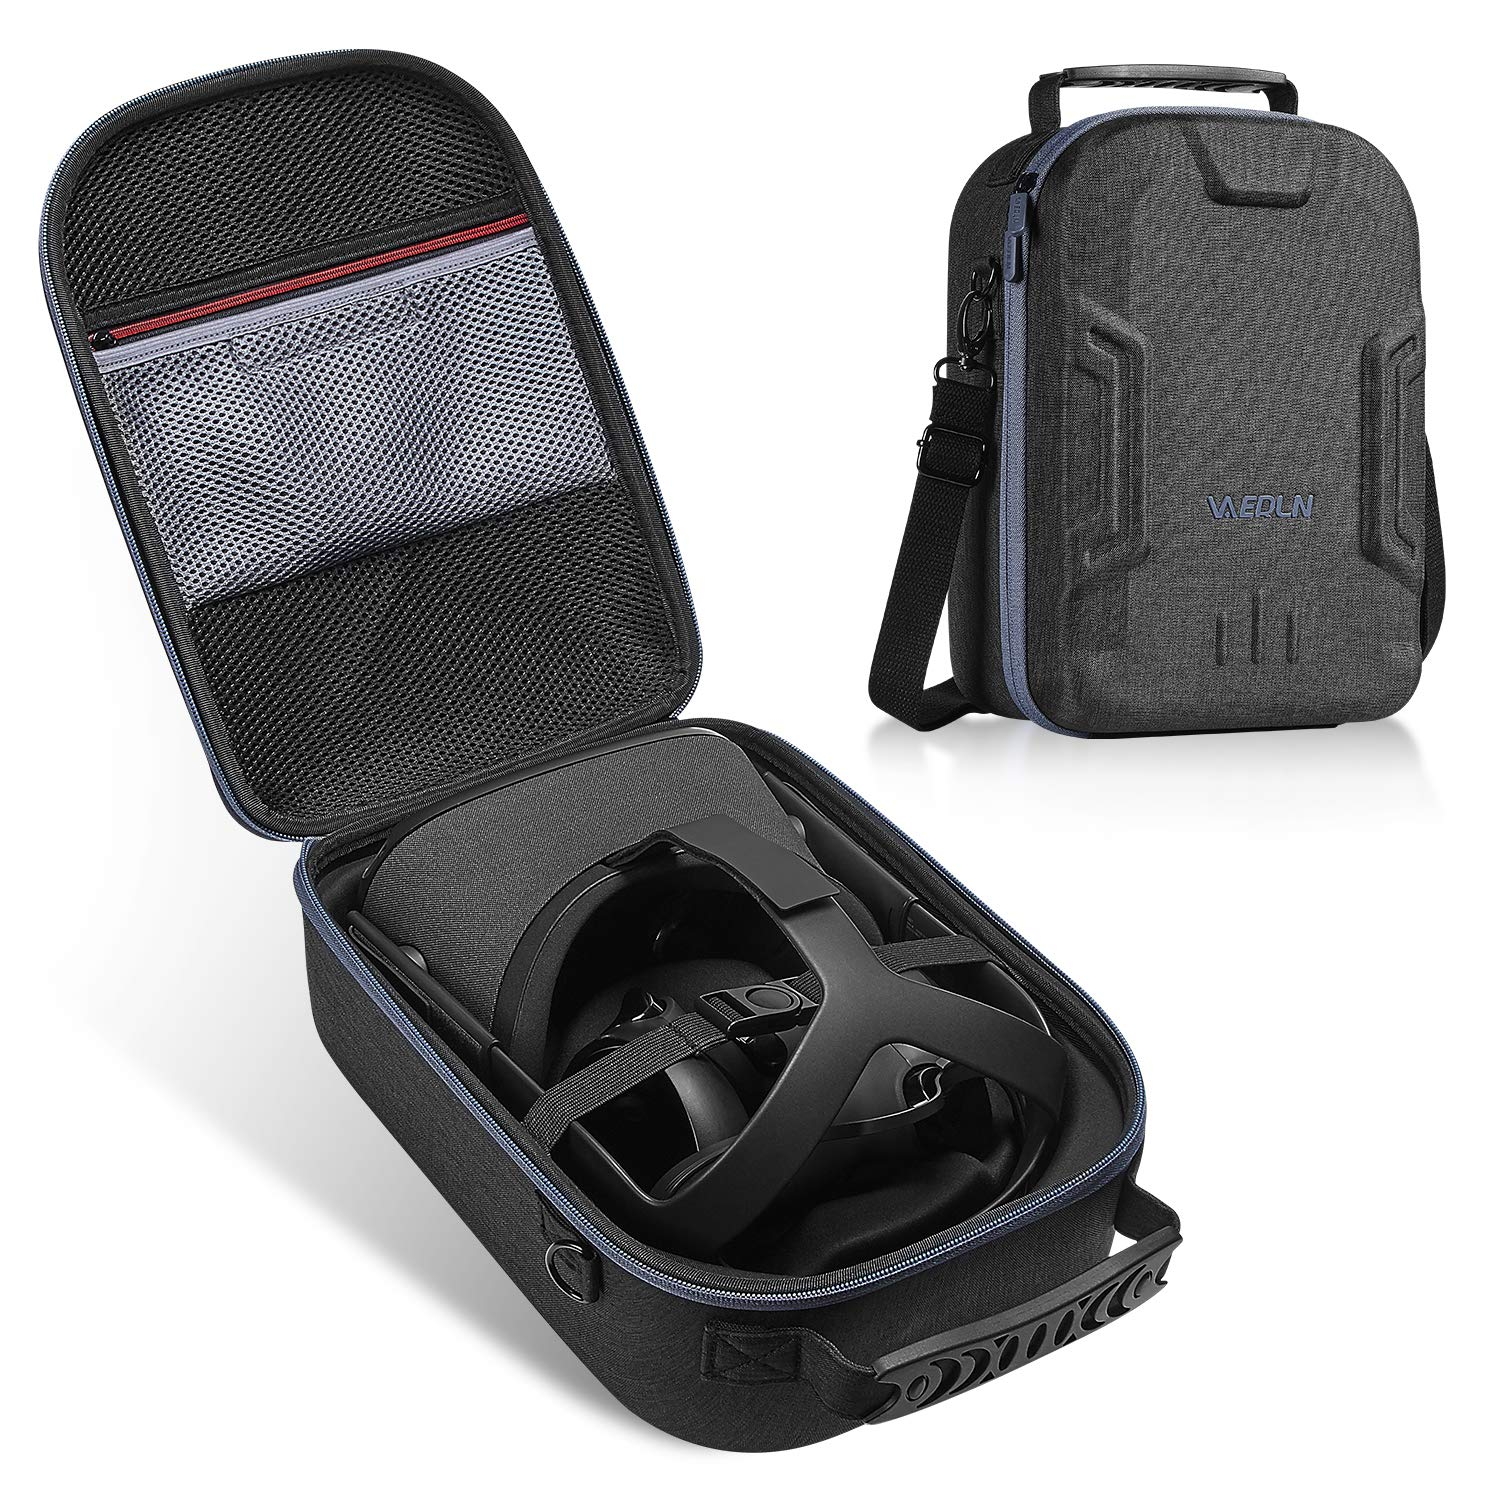 Vanerdun EVA Hard Case for Oculus Quest All-in-one VR Gaming Headset - Virtual Reality Protective Bag by Vanerdun